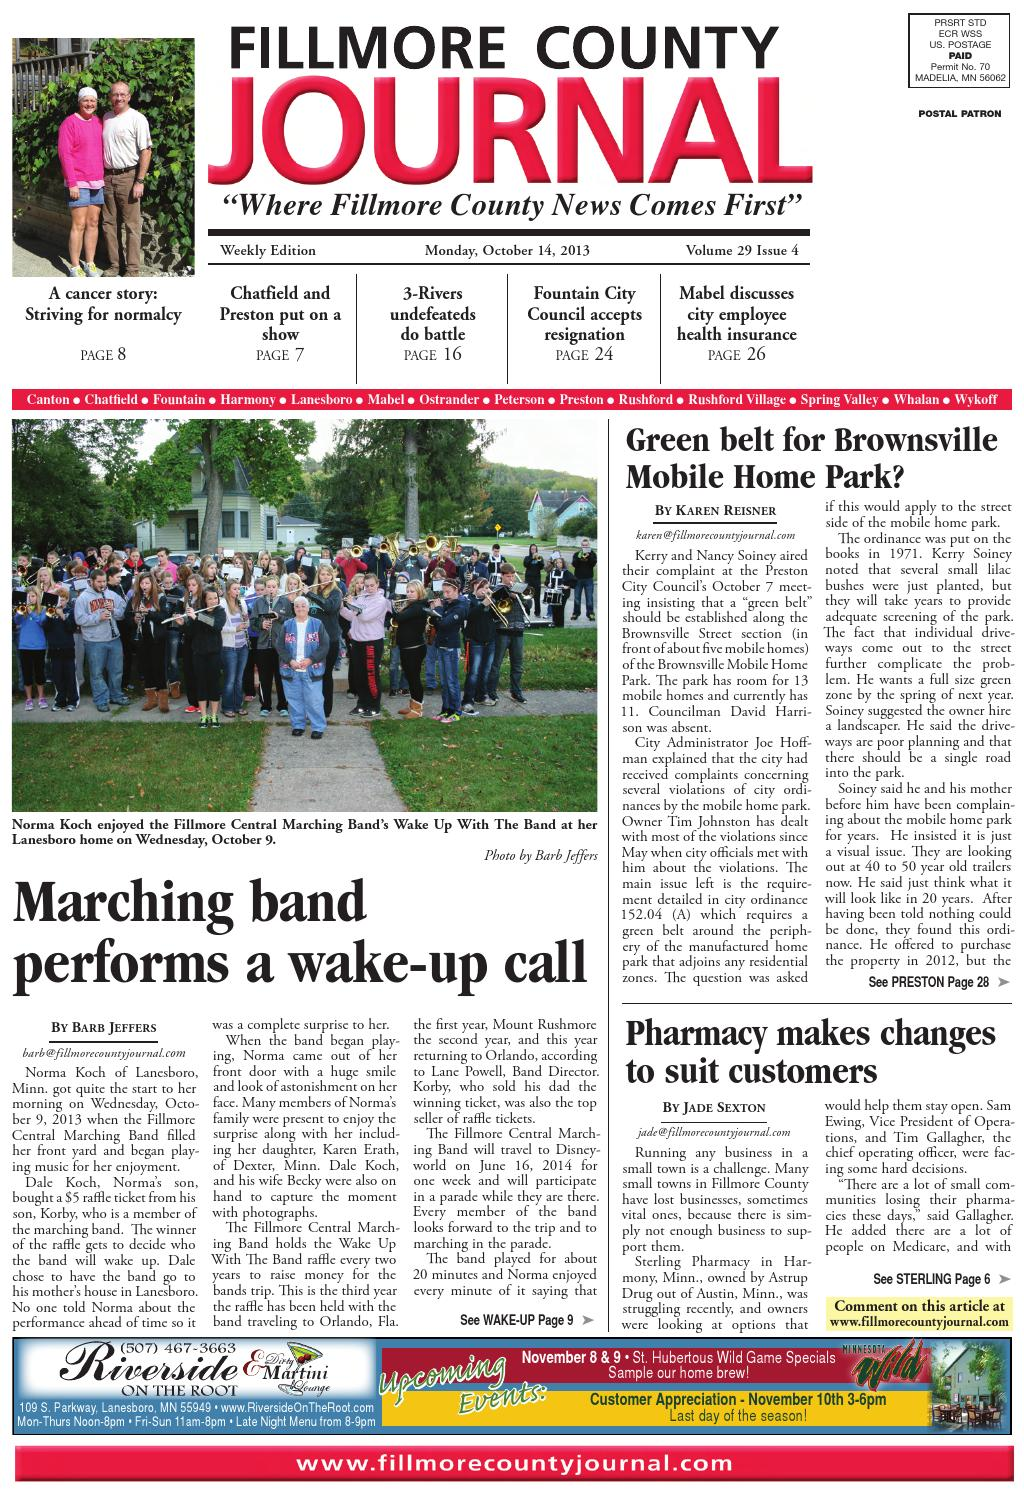 b58c7ae71847 Fillmore County Journal 10.14.13 by Jason Sethre - issuu